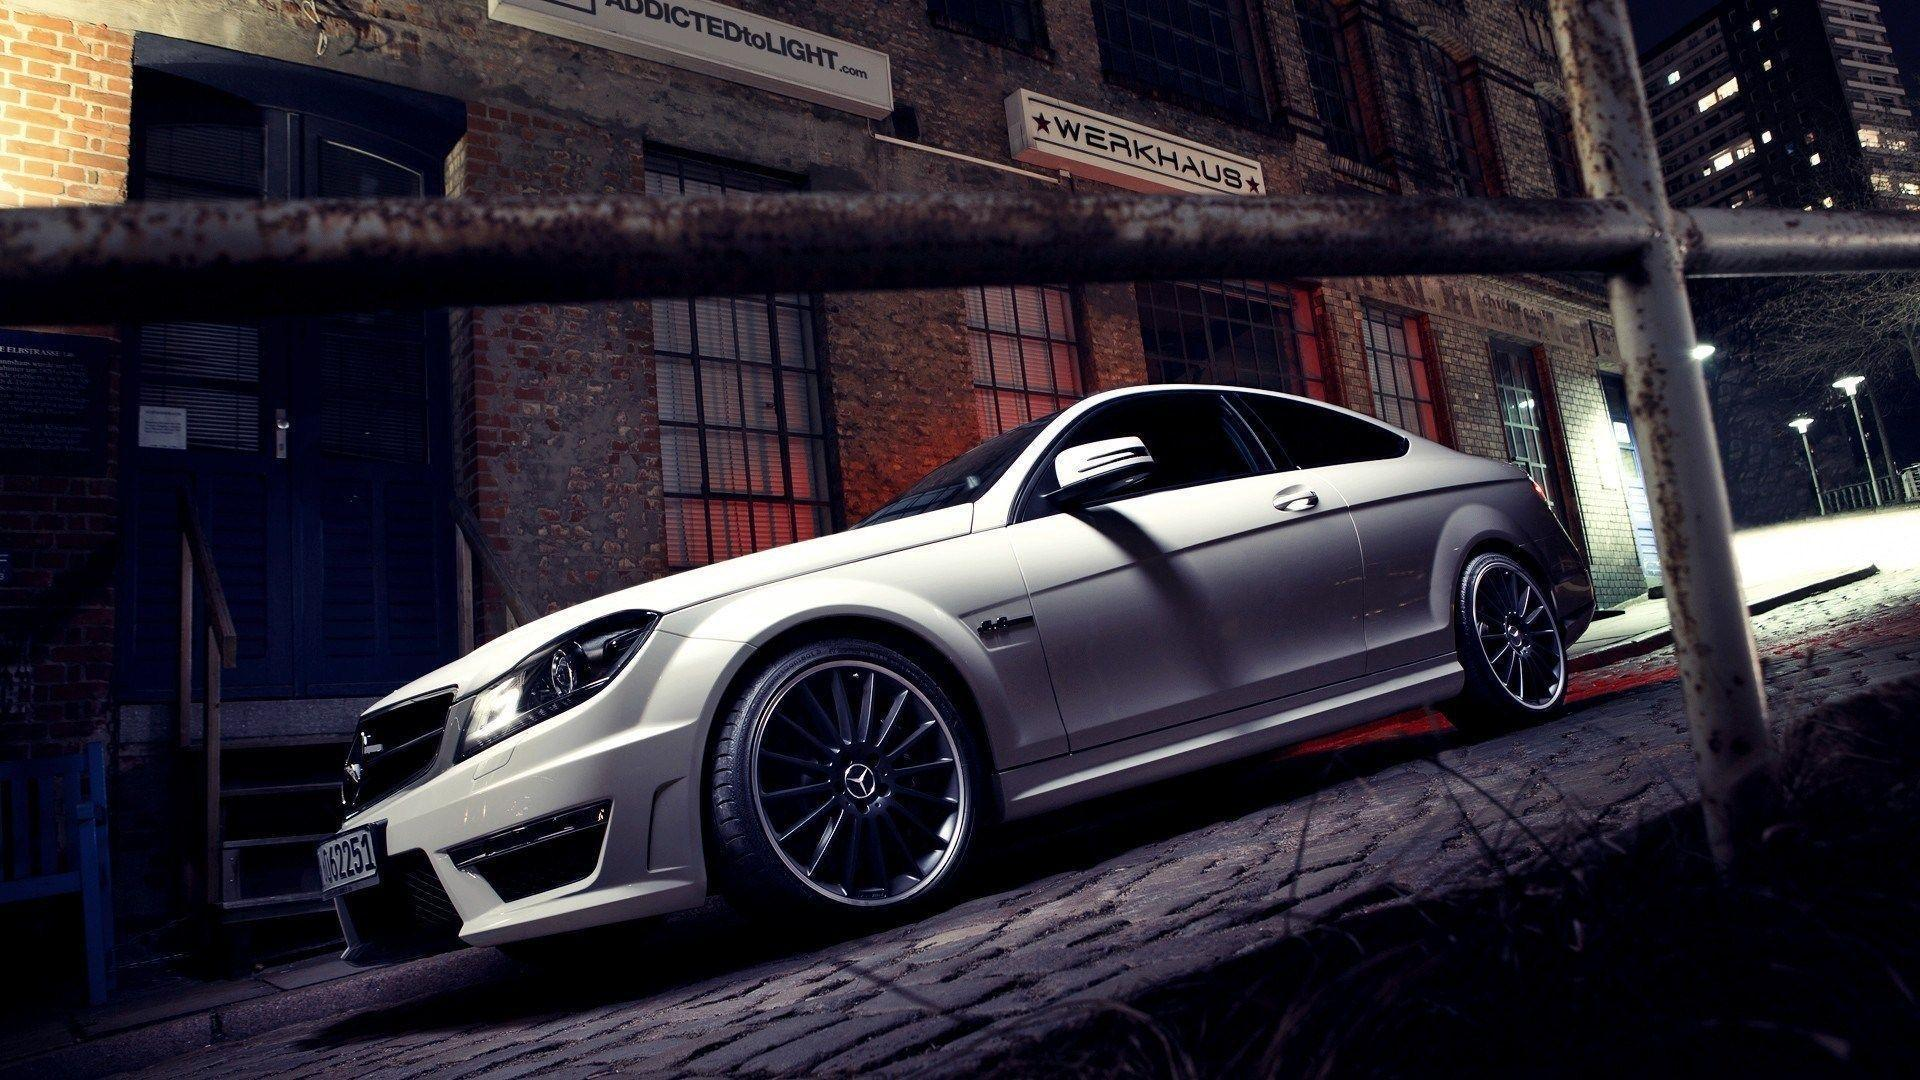 Mercedes Benz AMG Wallpapers 1920x1080